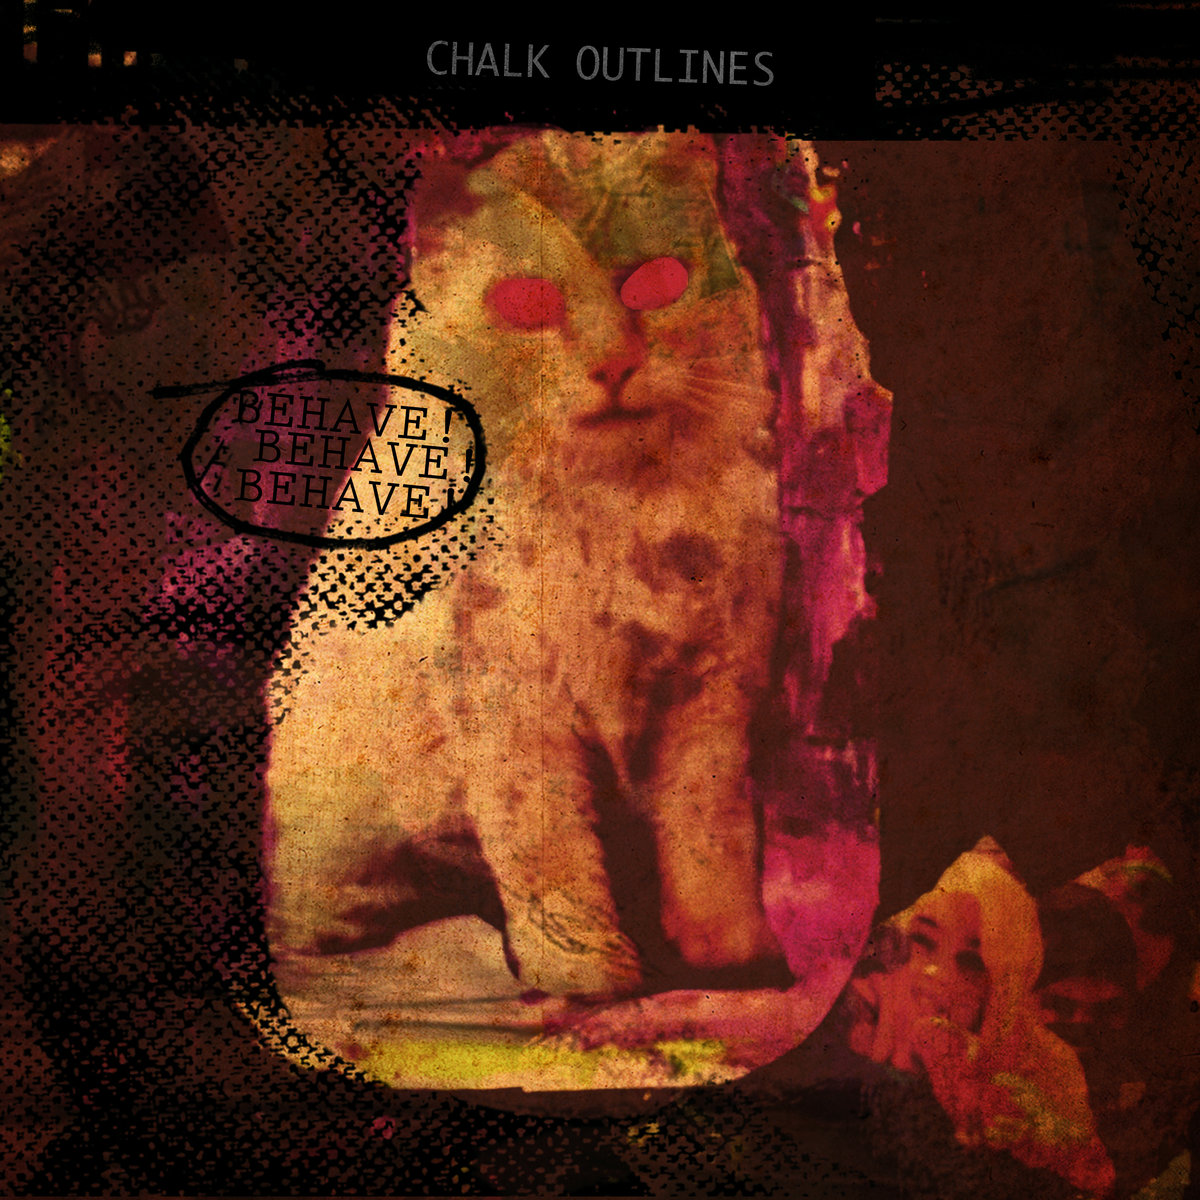 Chalk Outlines - Behave